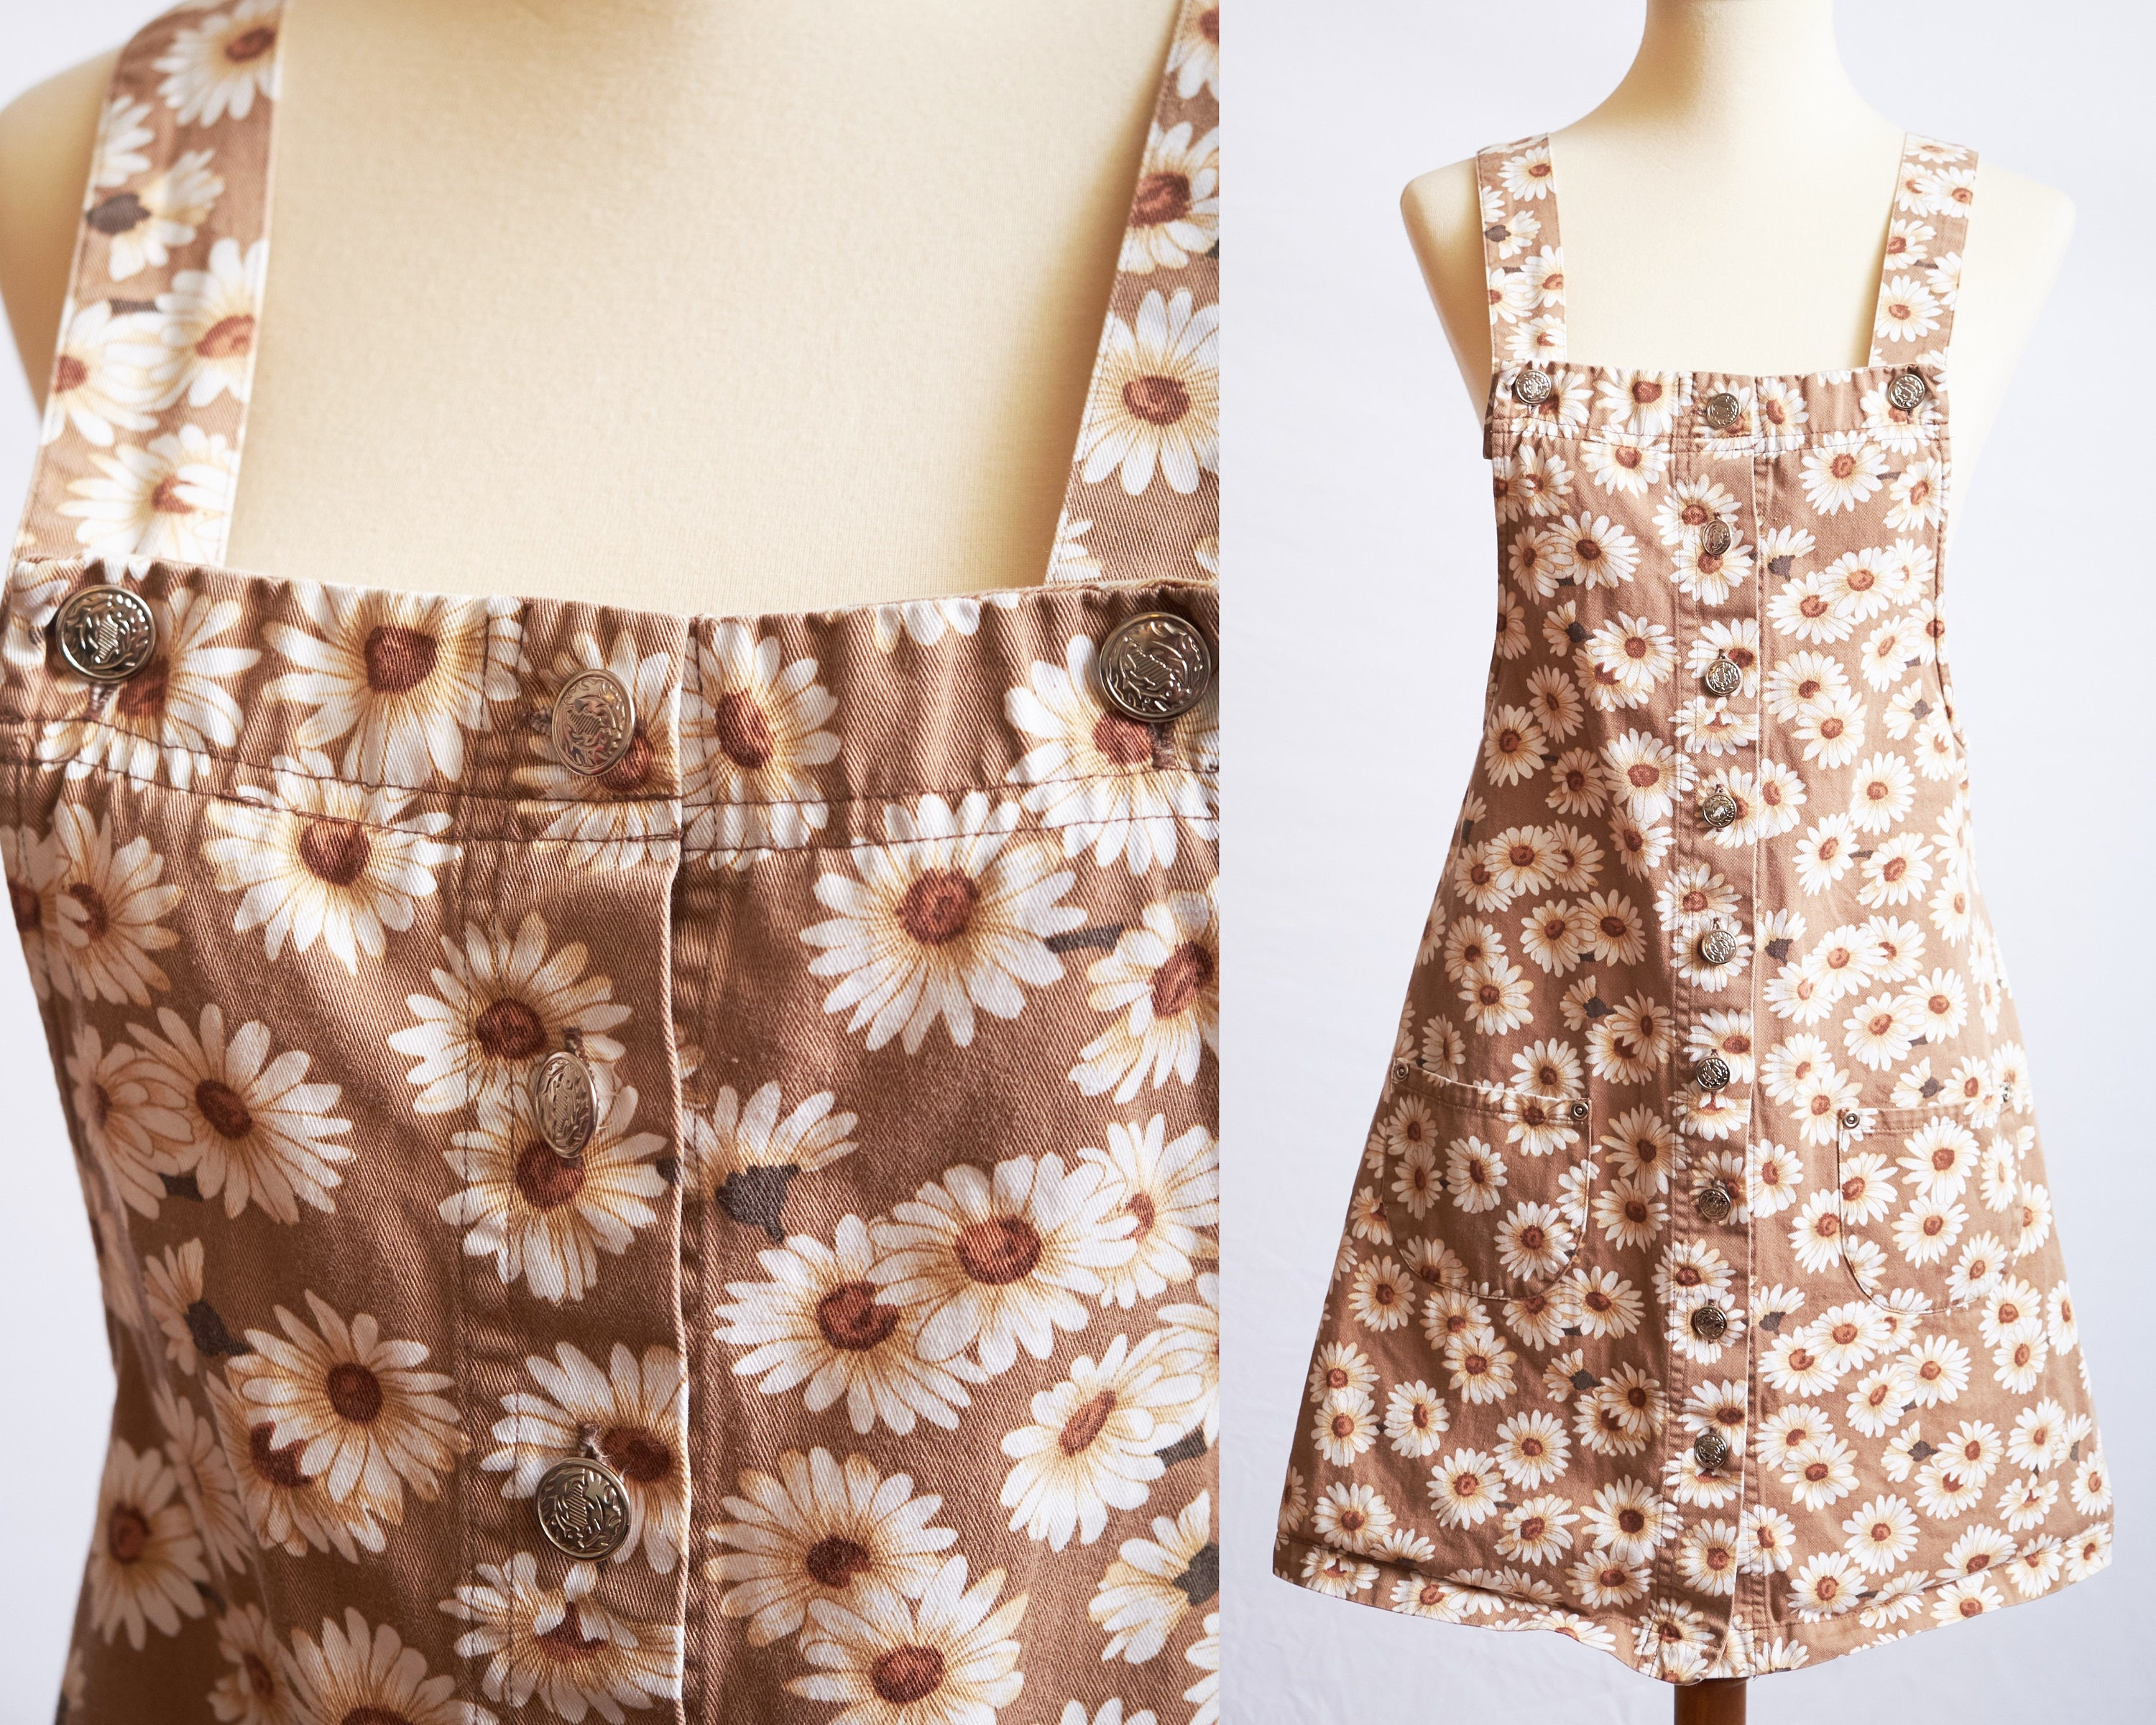 Vintage Overalls & Jumpsuits Vintage 90S Overall Dress Button Up Short Mini Denim Jean Floral Taupe Daisy Cottagecore Summer Sleeveless Retro Overalls $8.00 AT vintagedancer.com